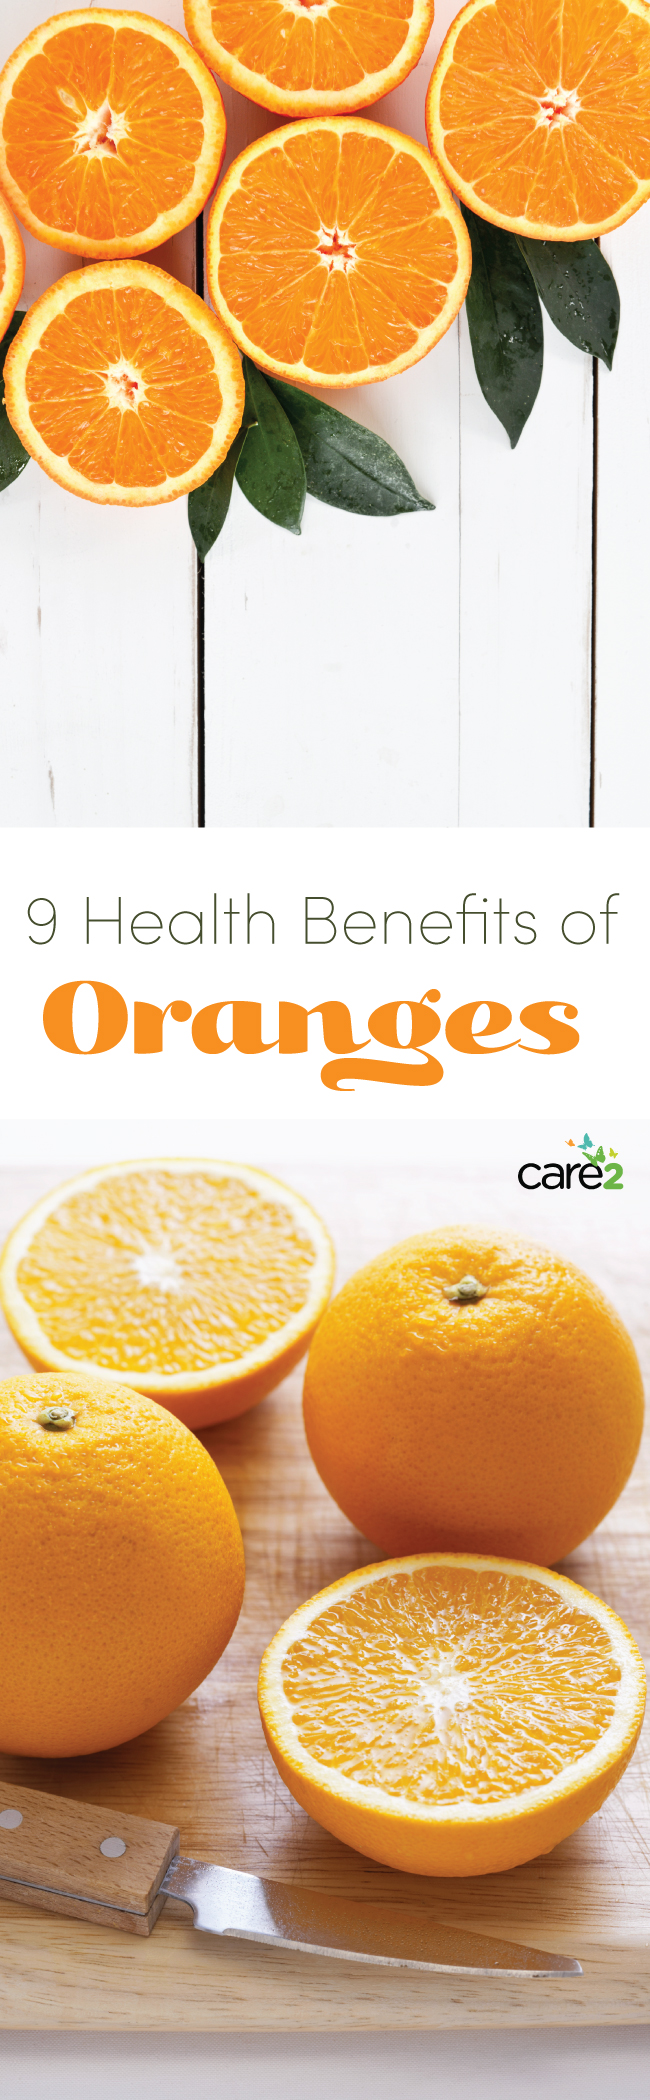 13 Health Benefits of Oranges